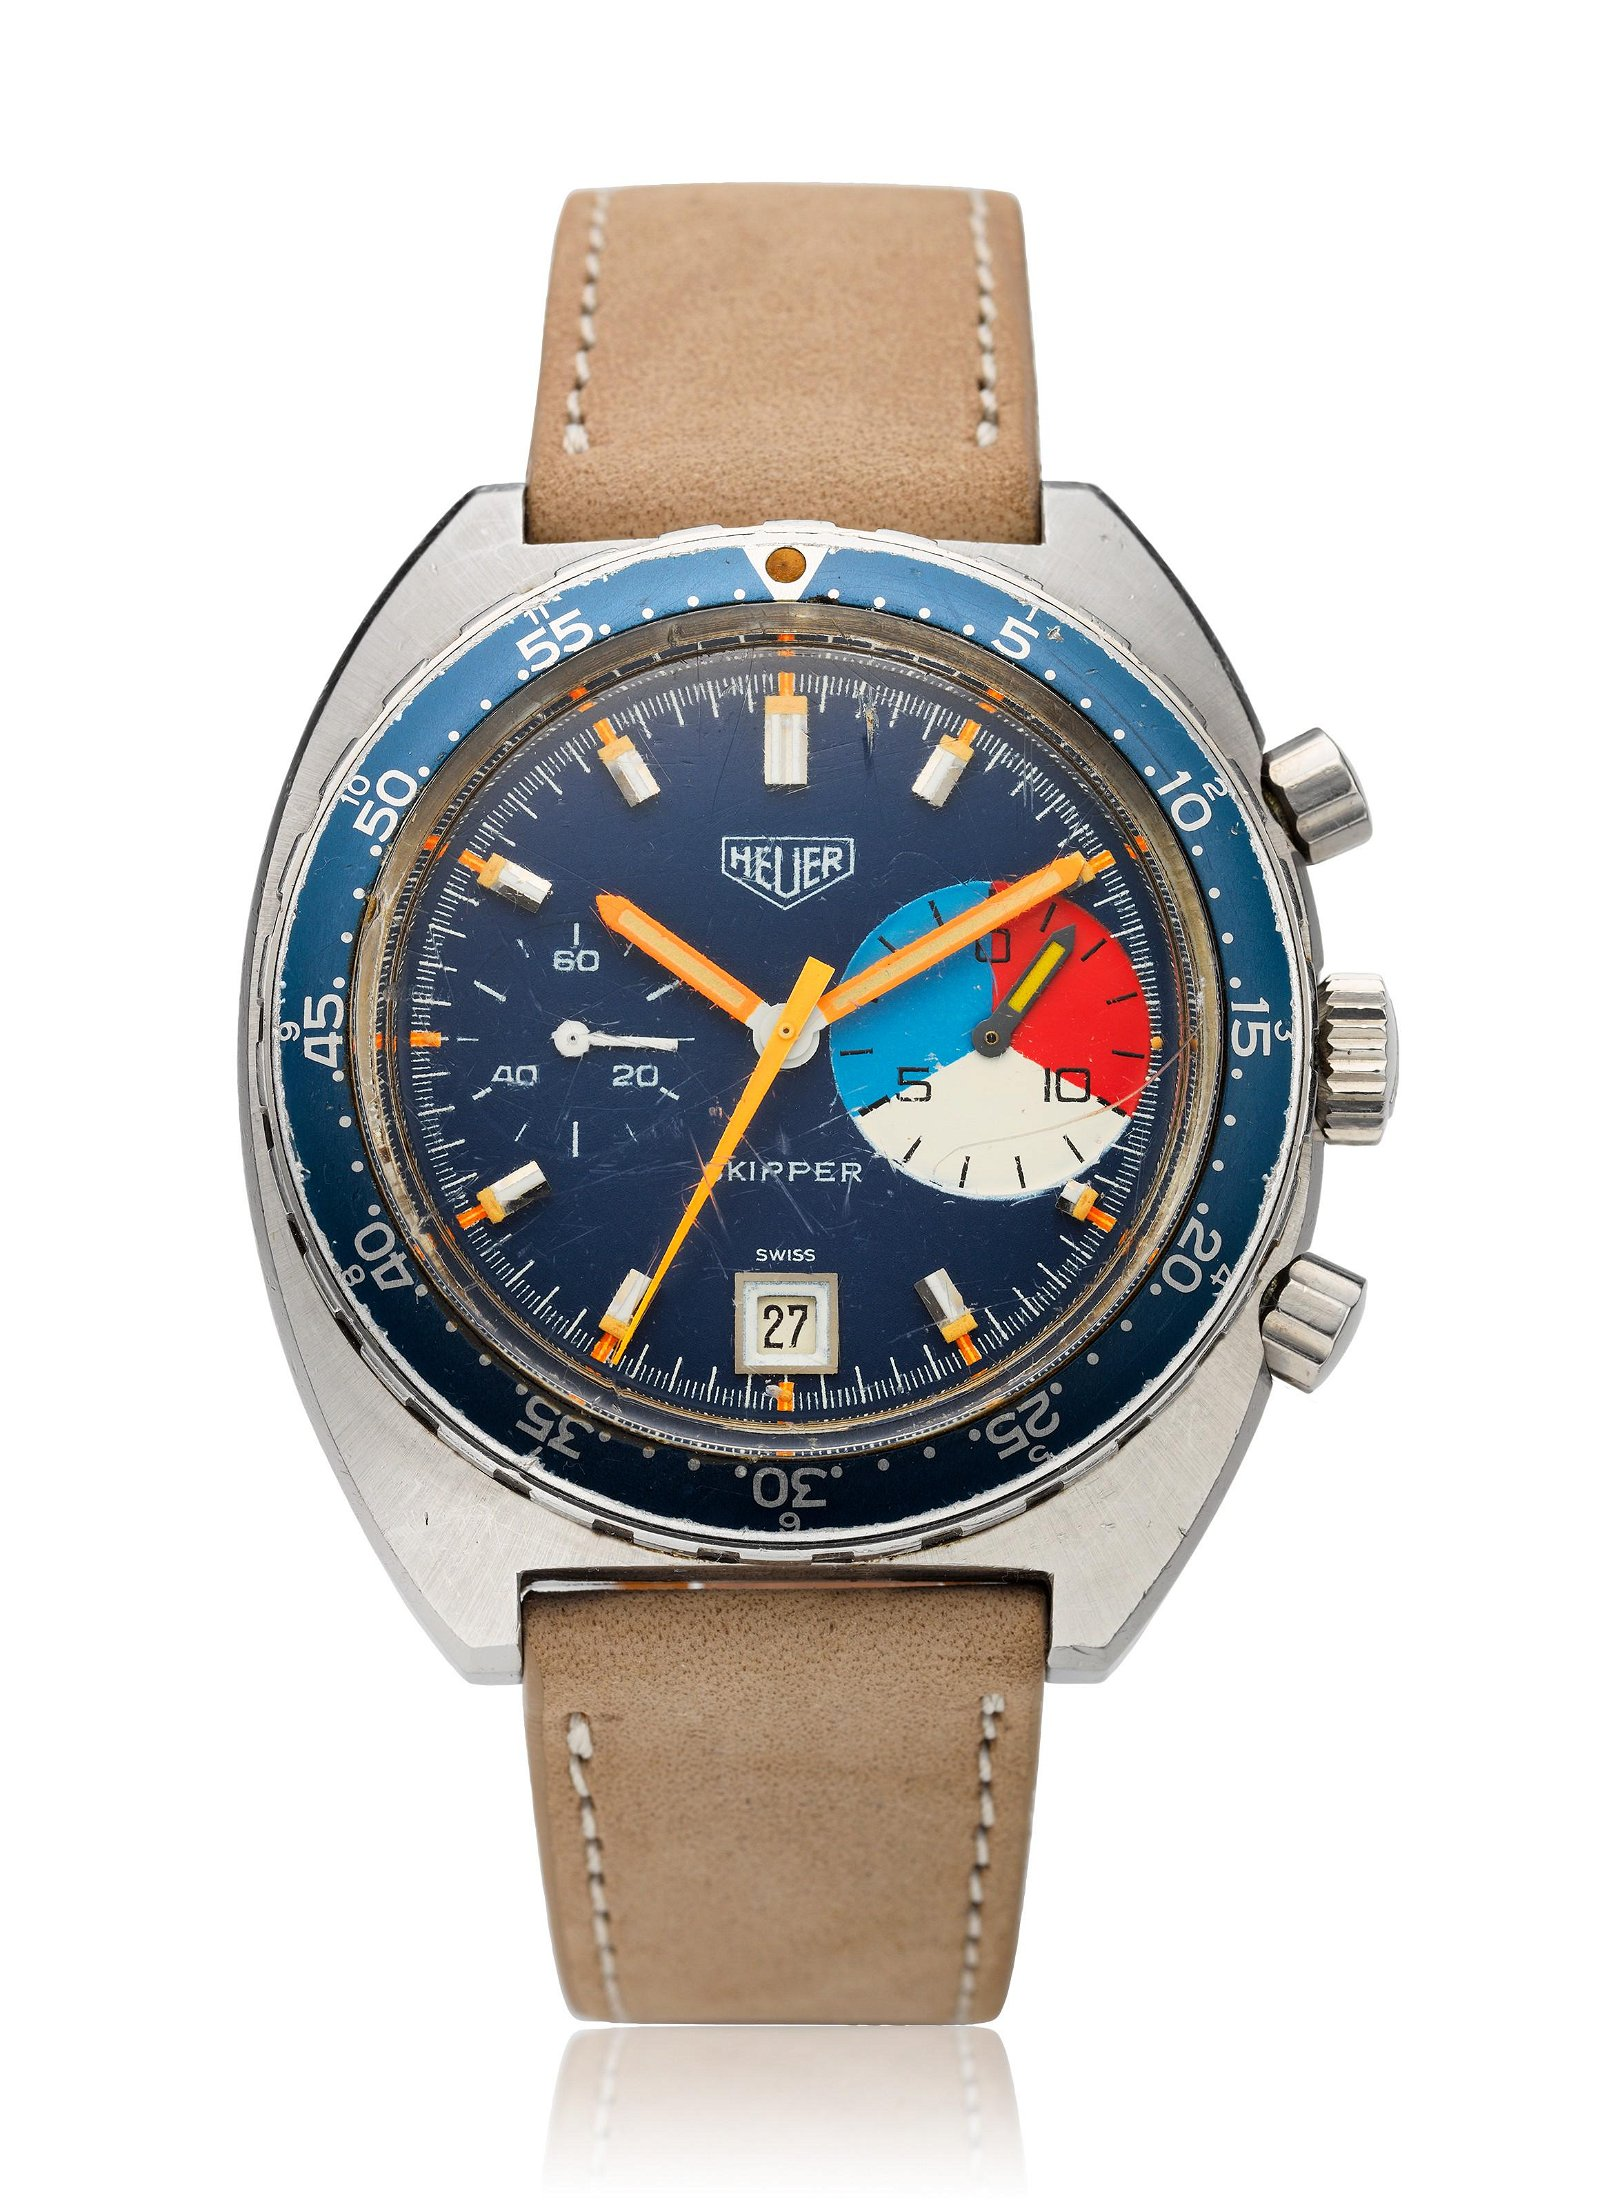 HEUER, FIRST-EXECUTION AUTAVIA CASE SKIPPER, REF. 73463